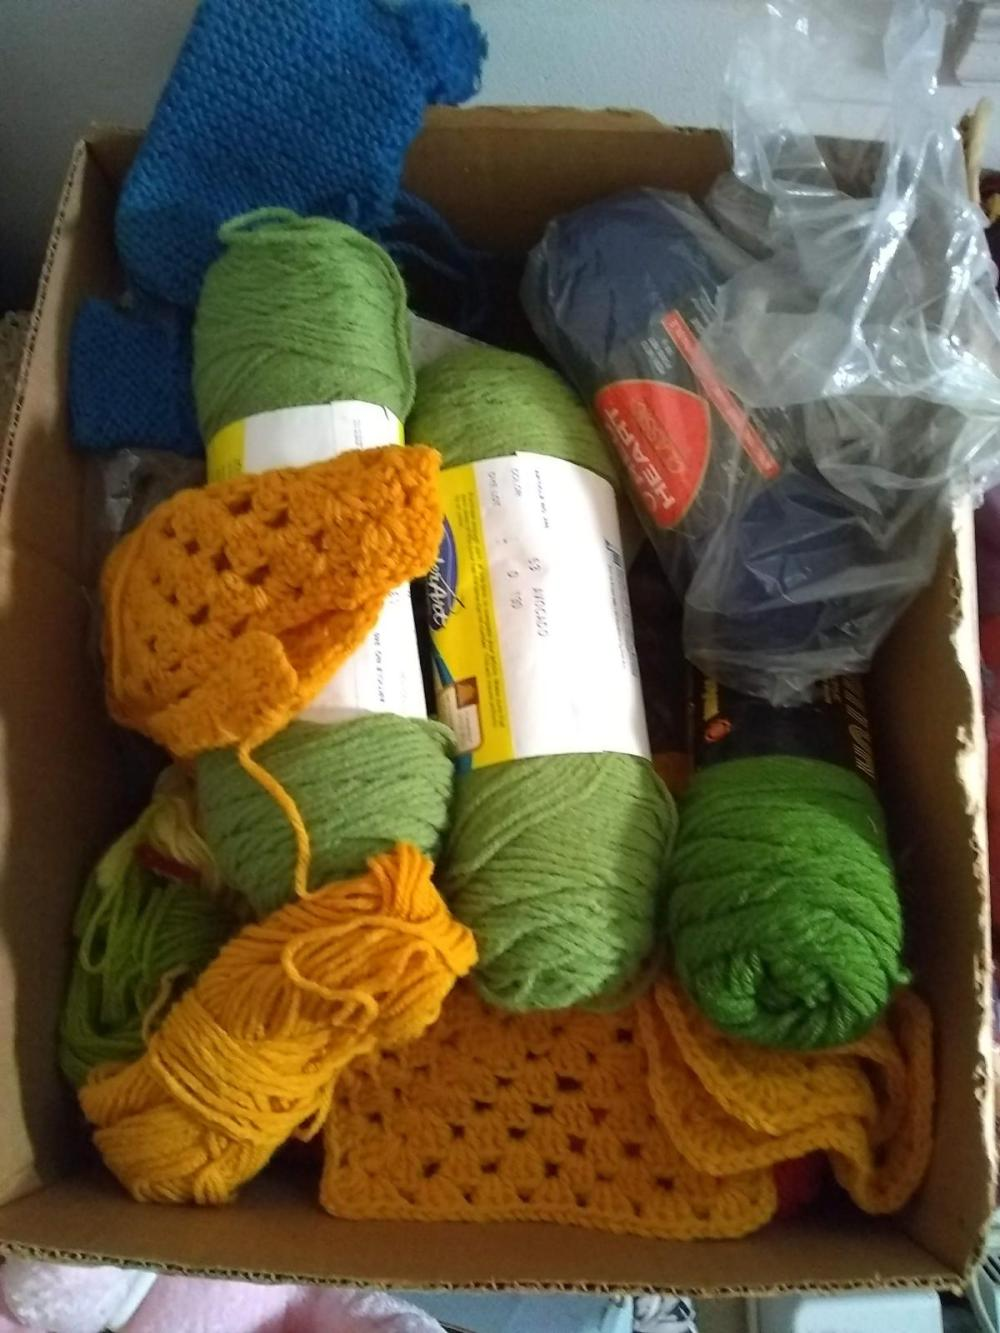 Crocheted Yarn & Accessories